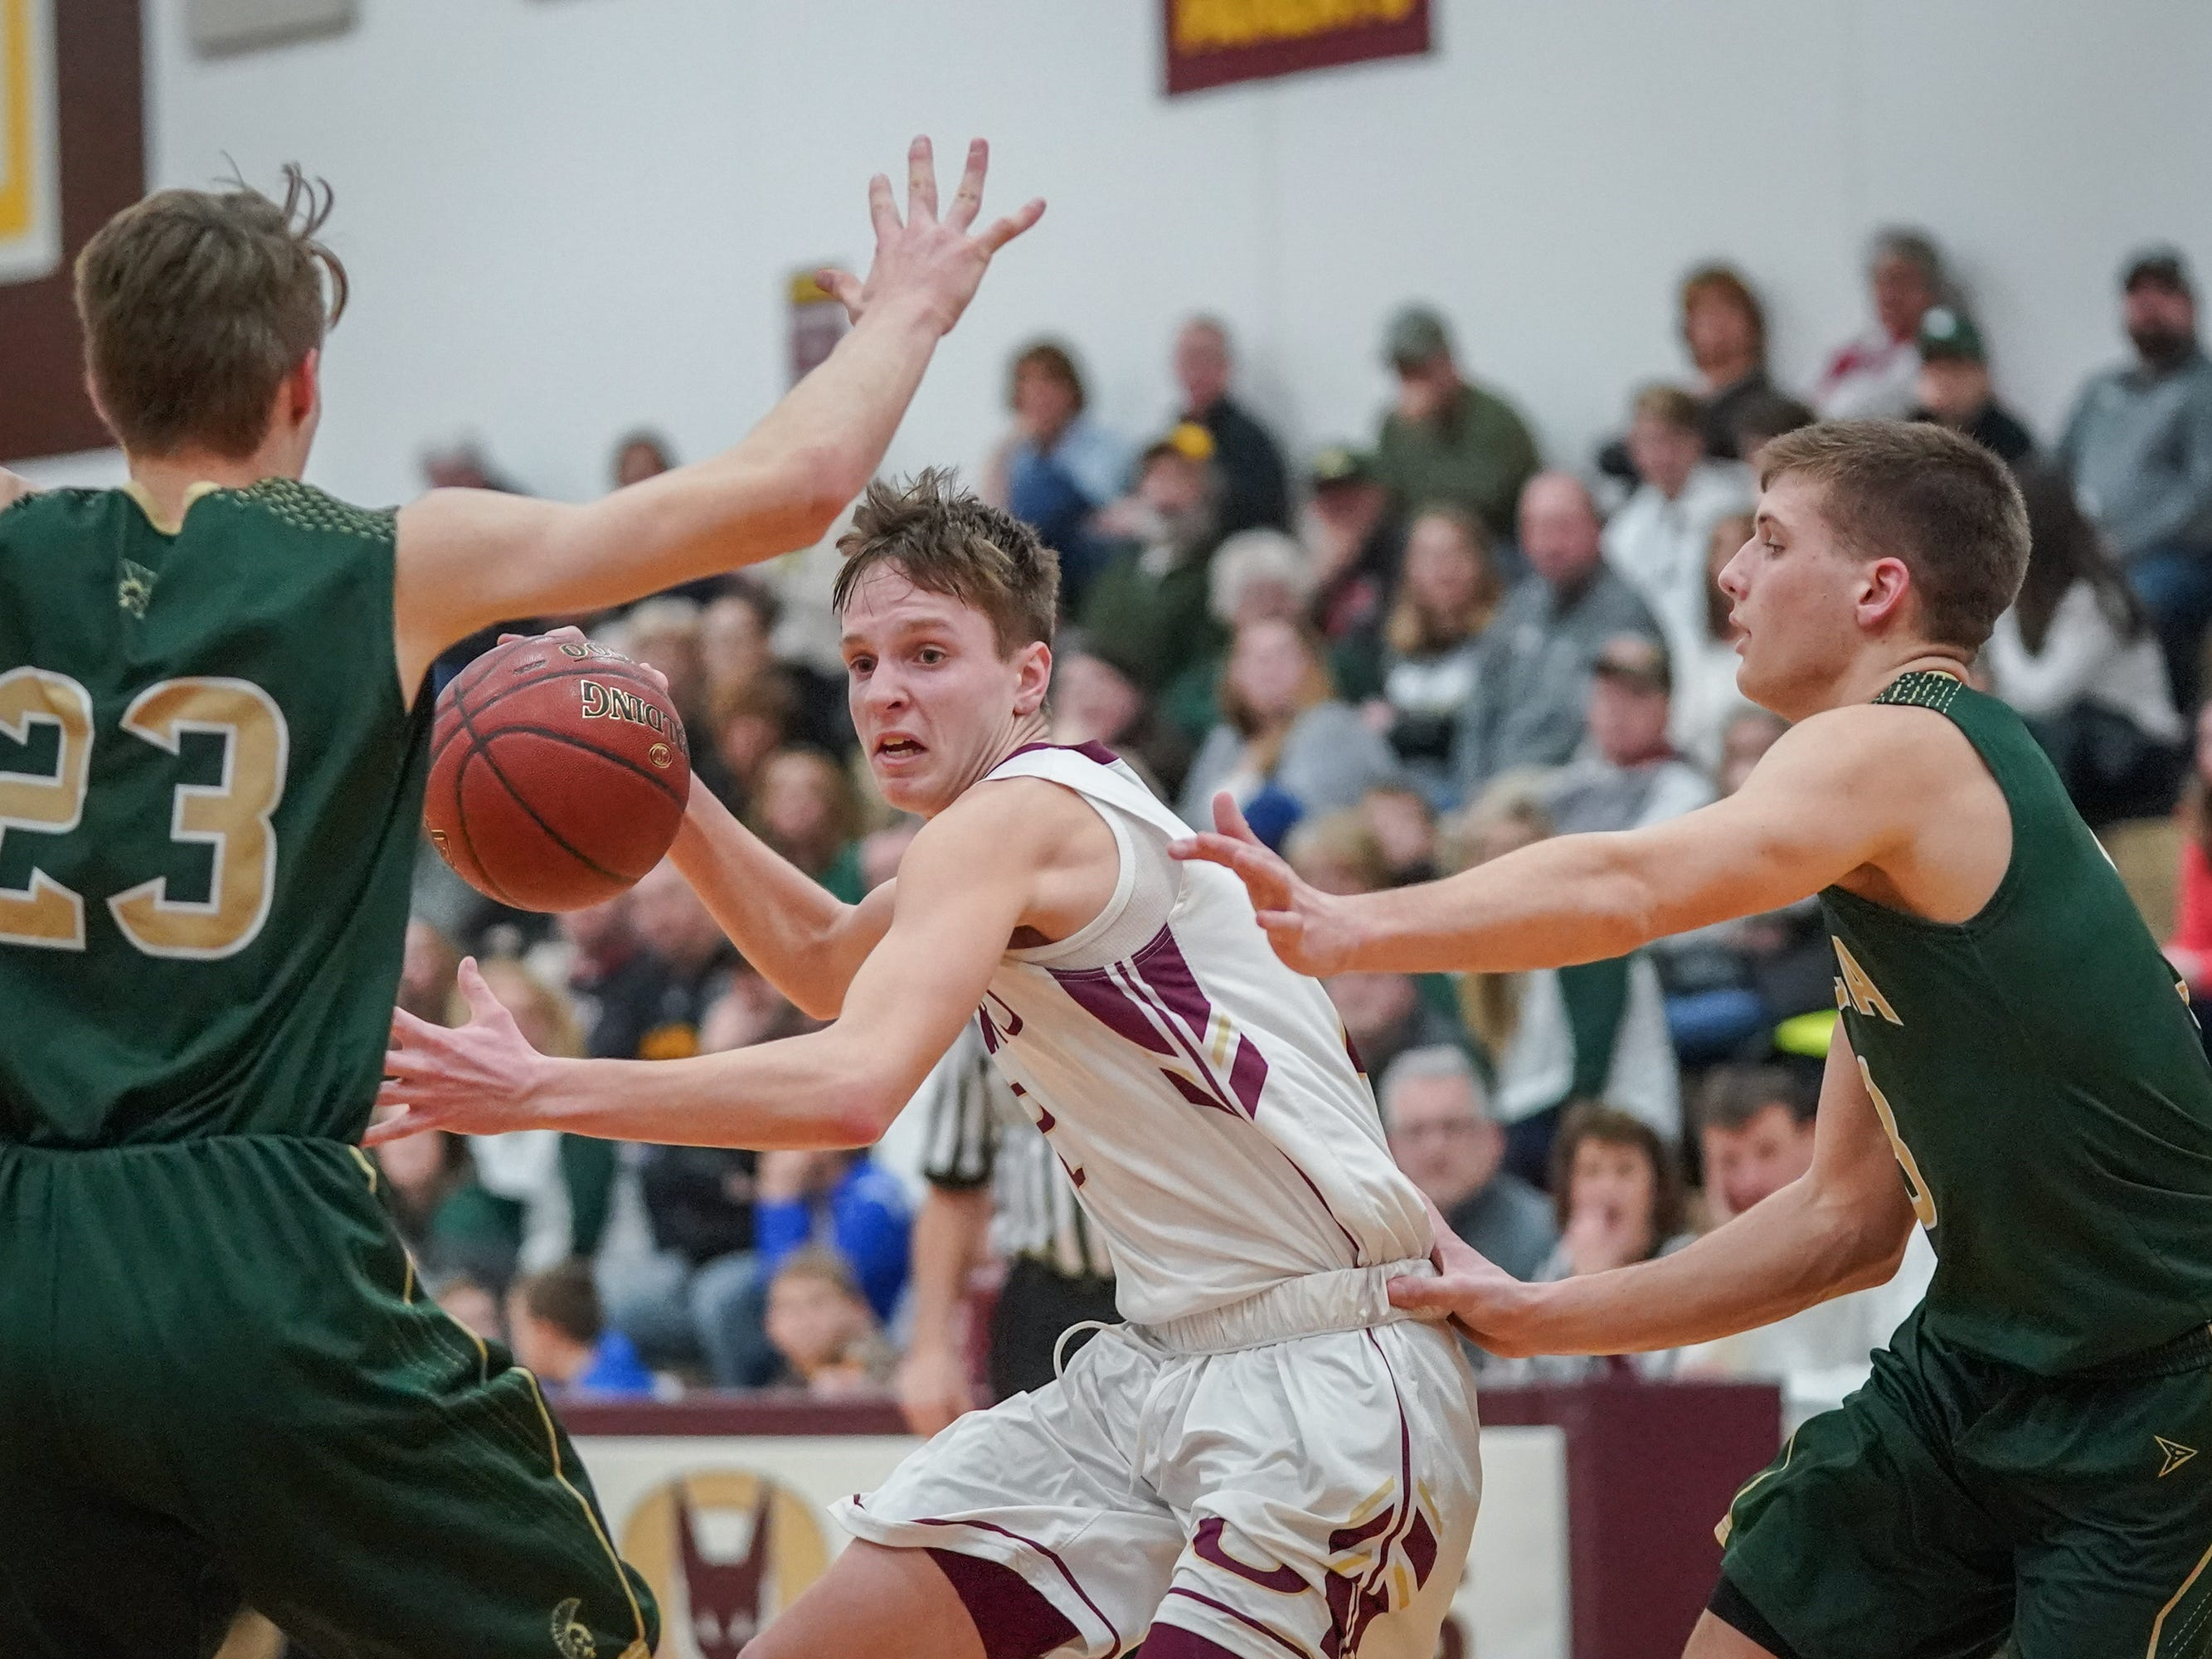 Carter Huth (2) of Omro fights his way to the basket. The Omro Foxes hosted the Laconia Spartans in a Flyway Conference basketball game Friday evening, January 11, 2019.